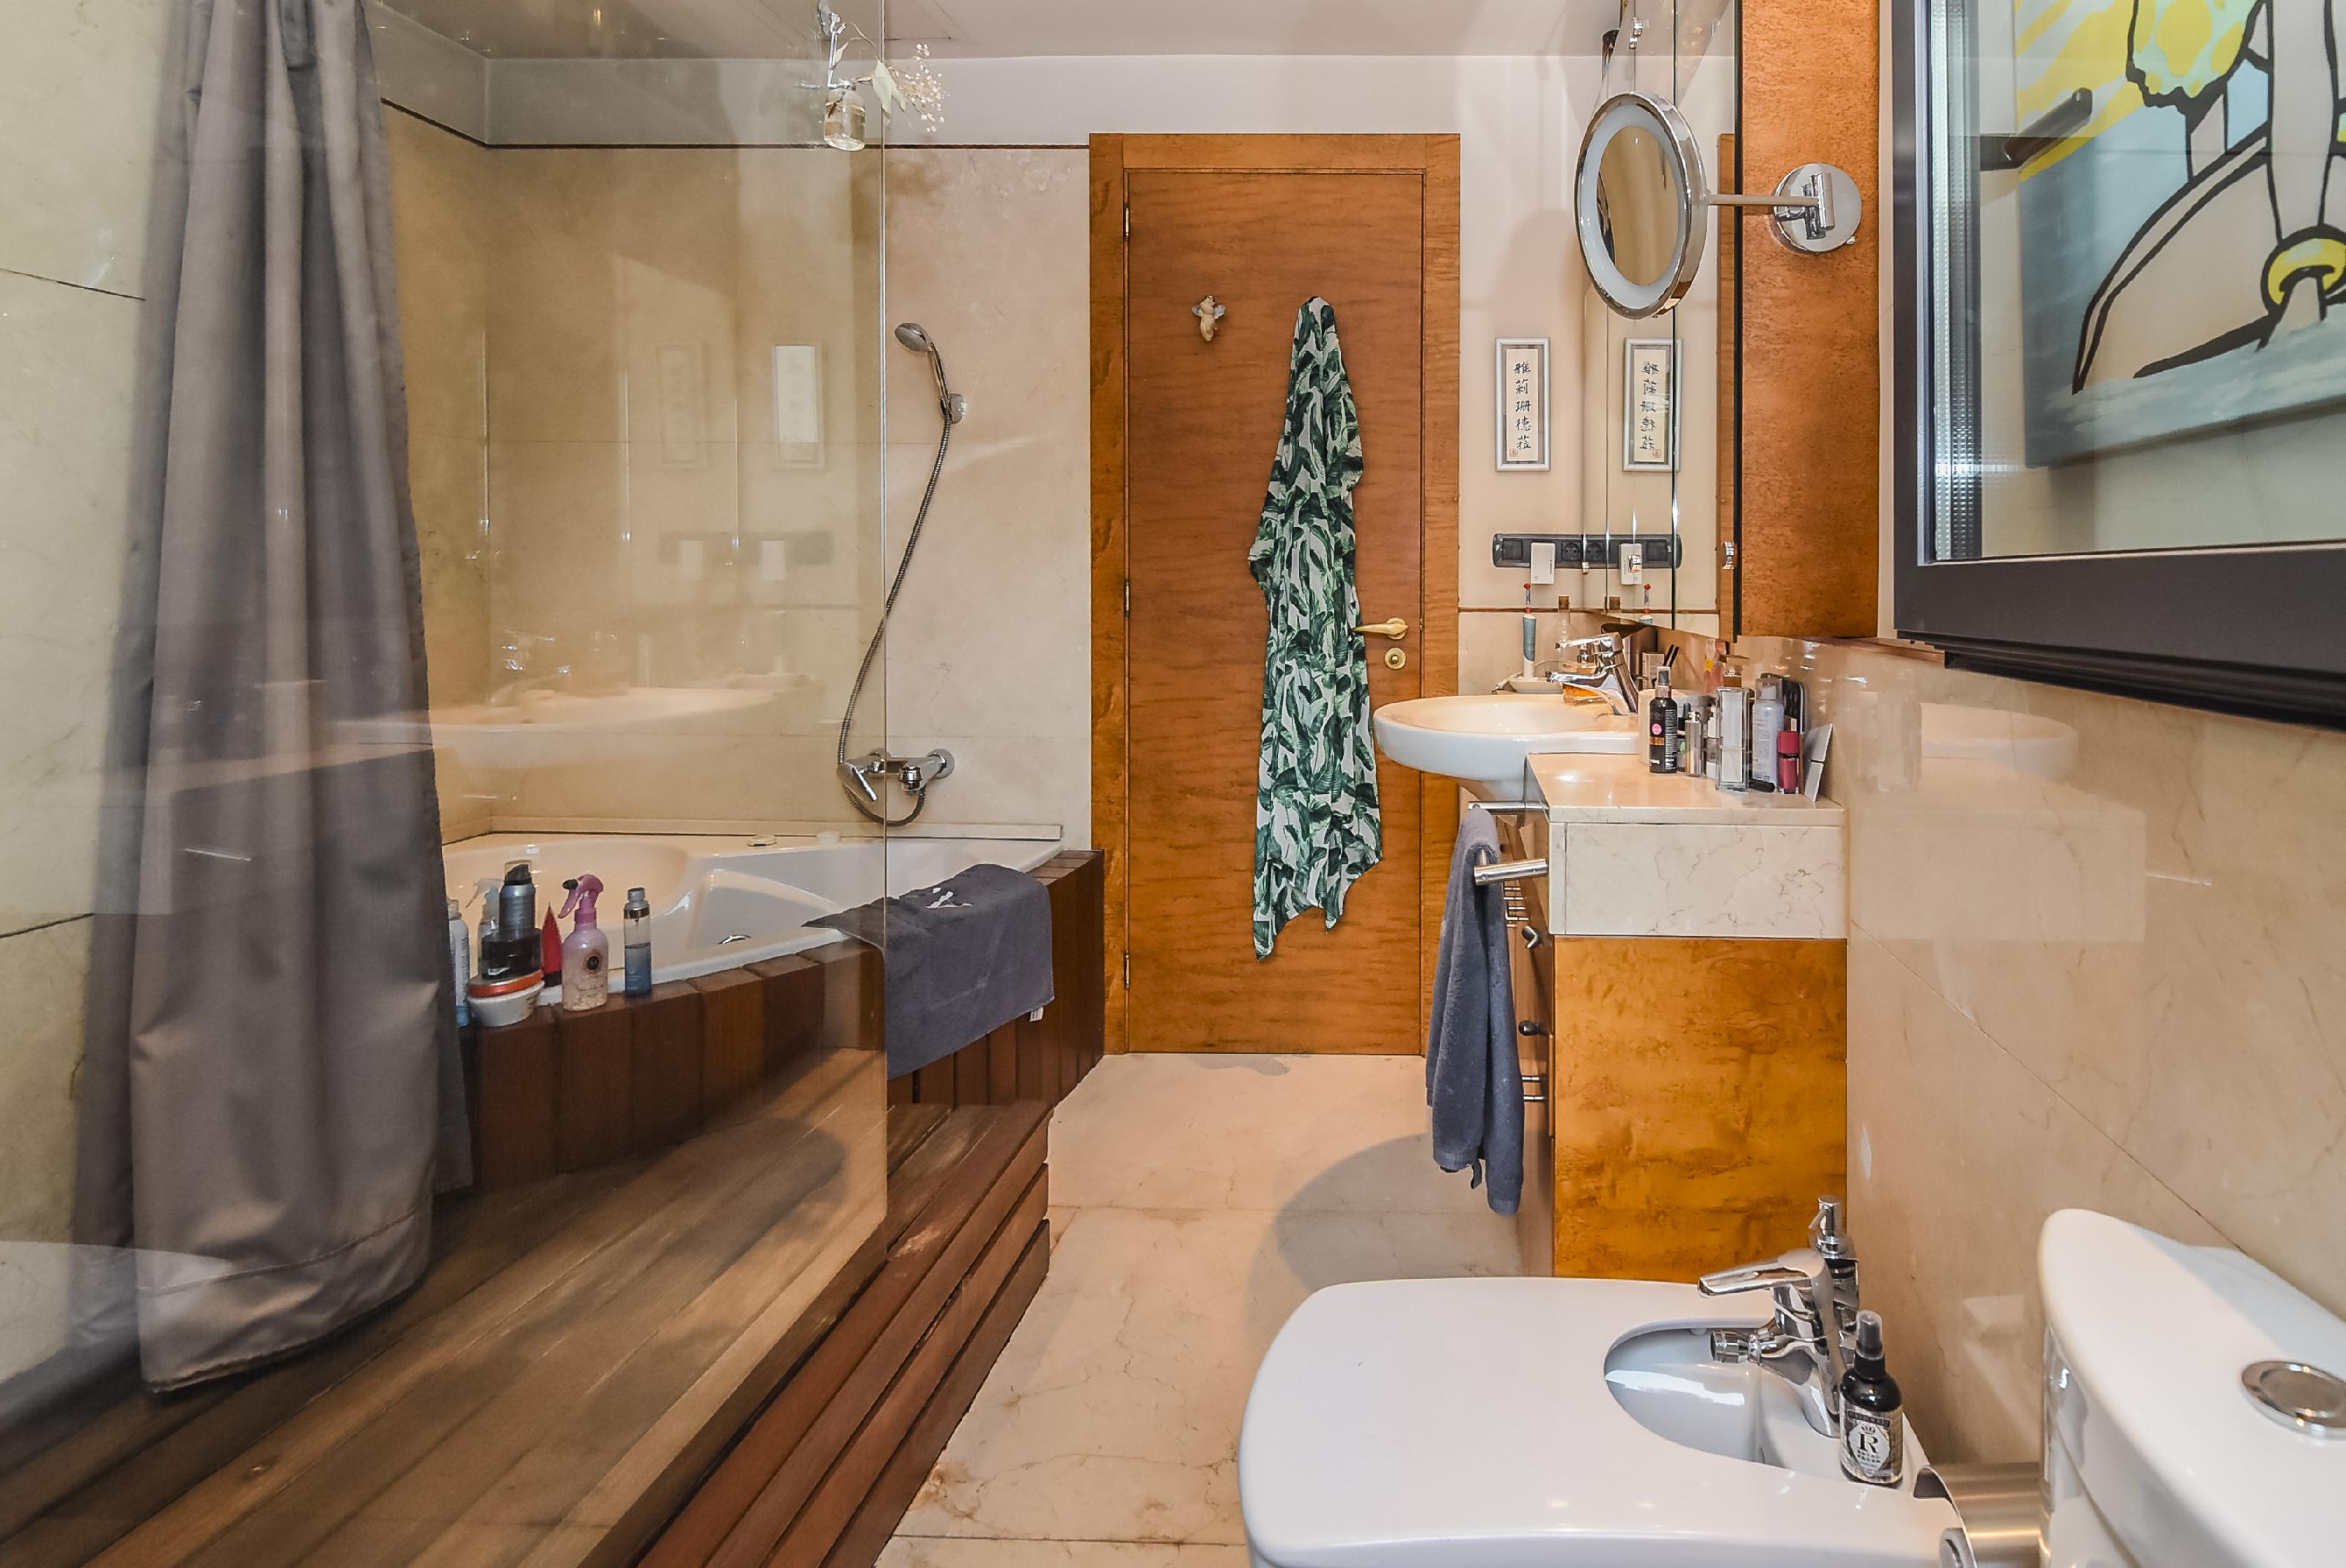 214424 House for sale in Les Corts, Pedralbes 14